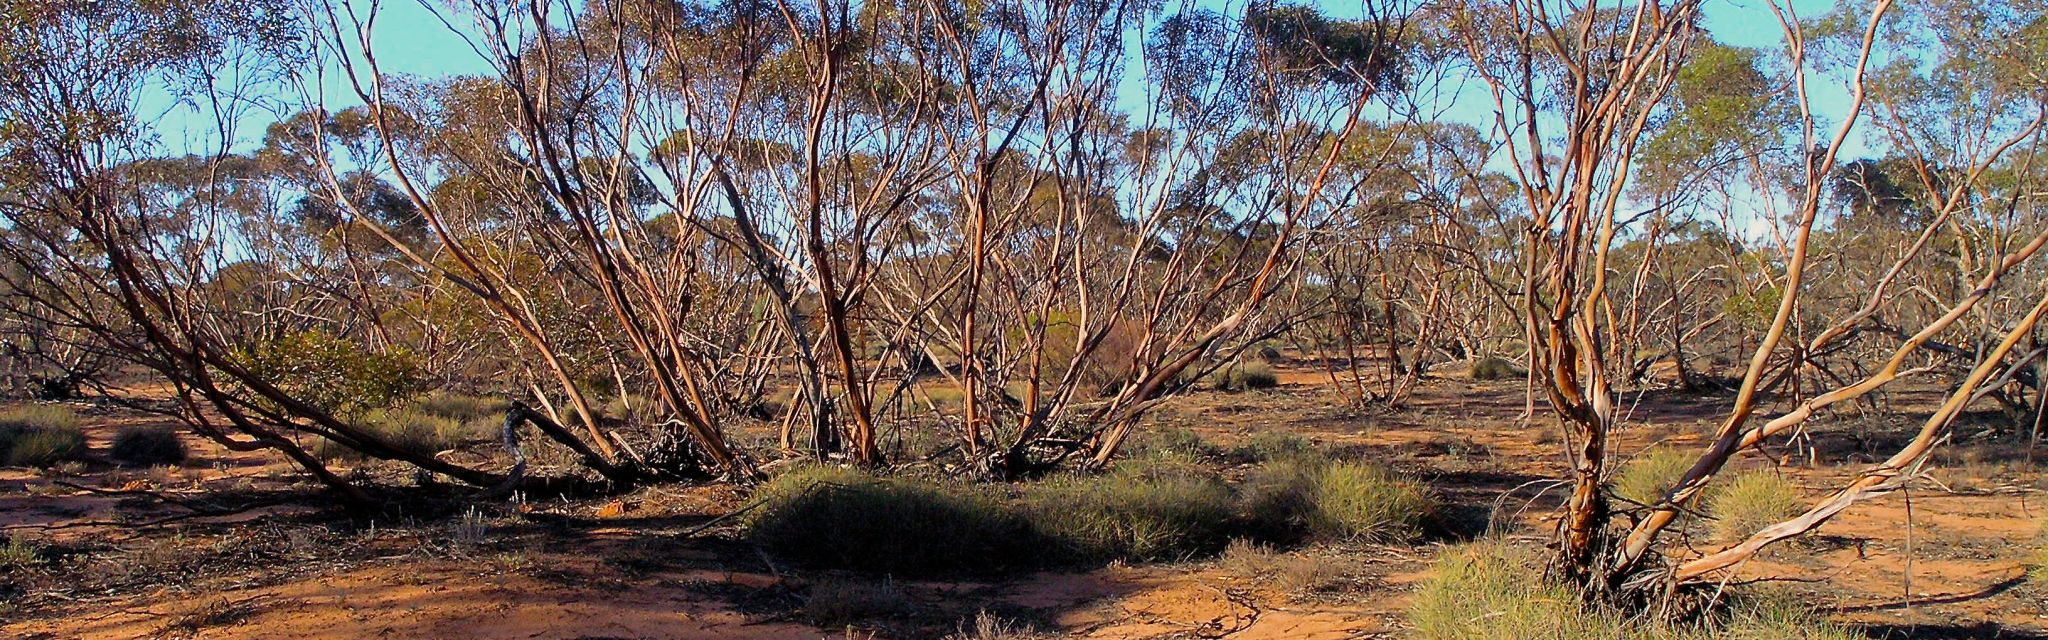 Mallee Scrub Mungo National park Big Rivers Outback Tour